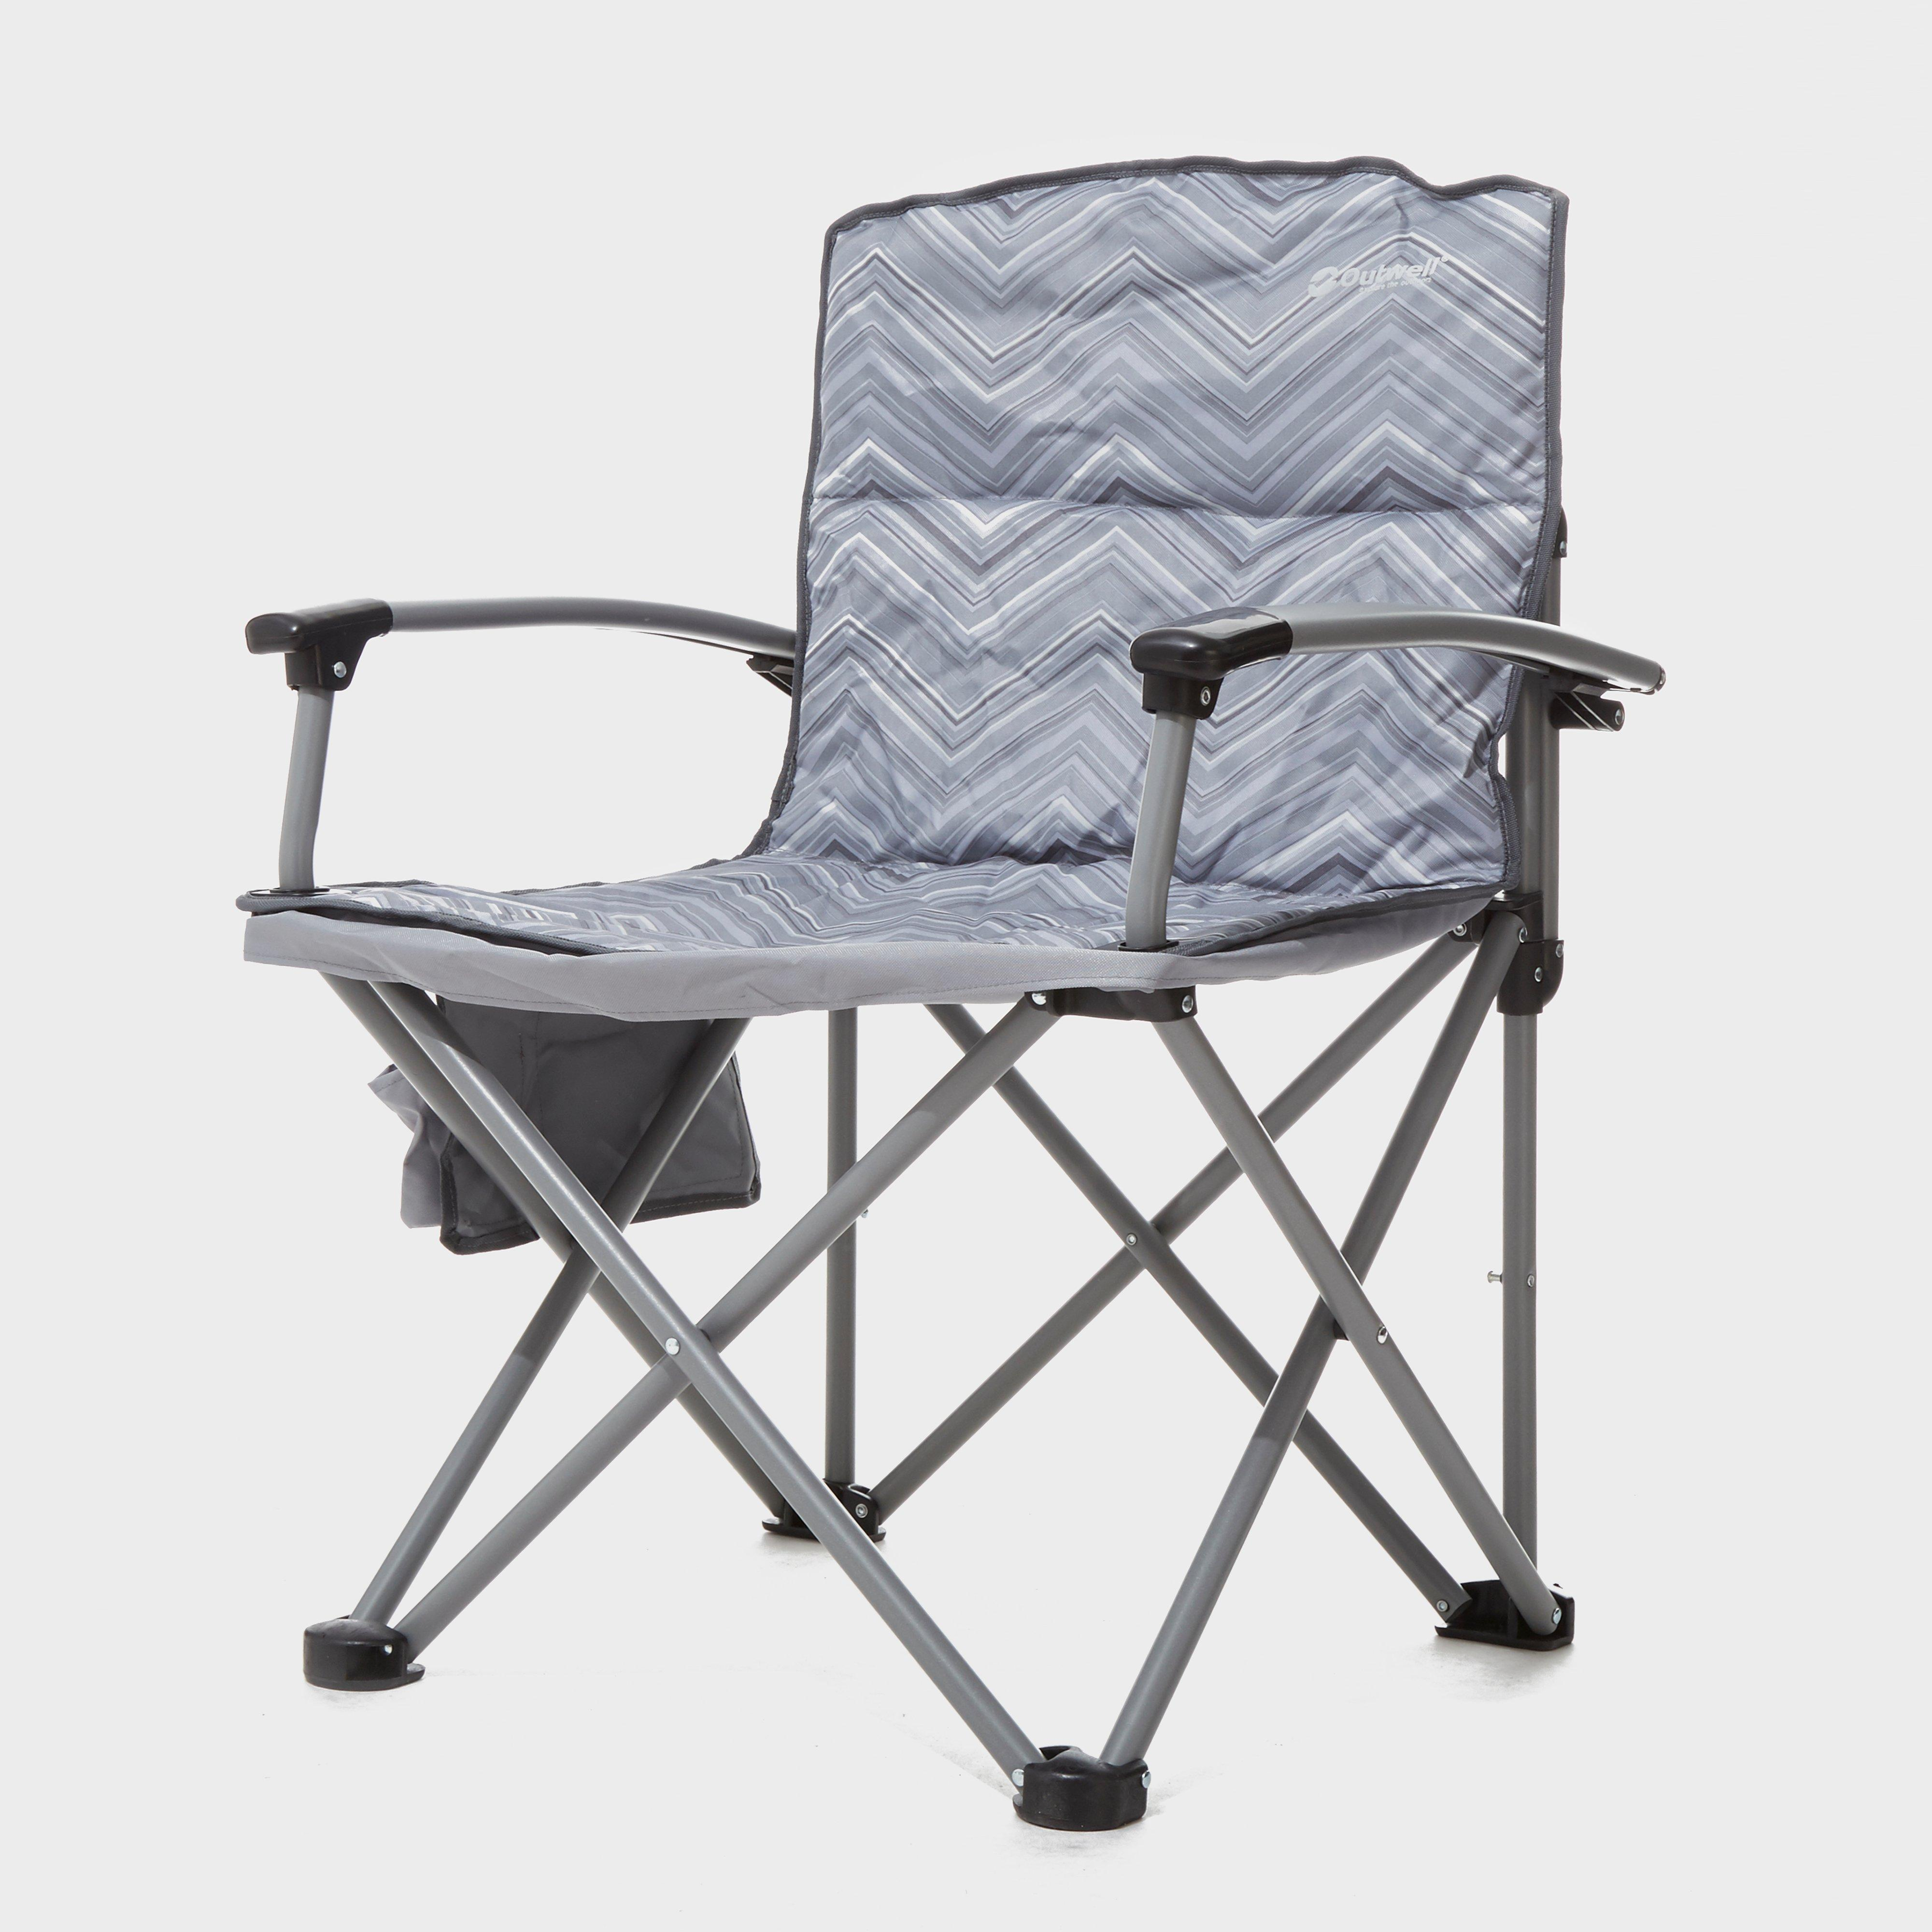 baby camping chair what is best height for rail with 8 ceilings padded folding shop cheap products and